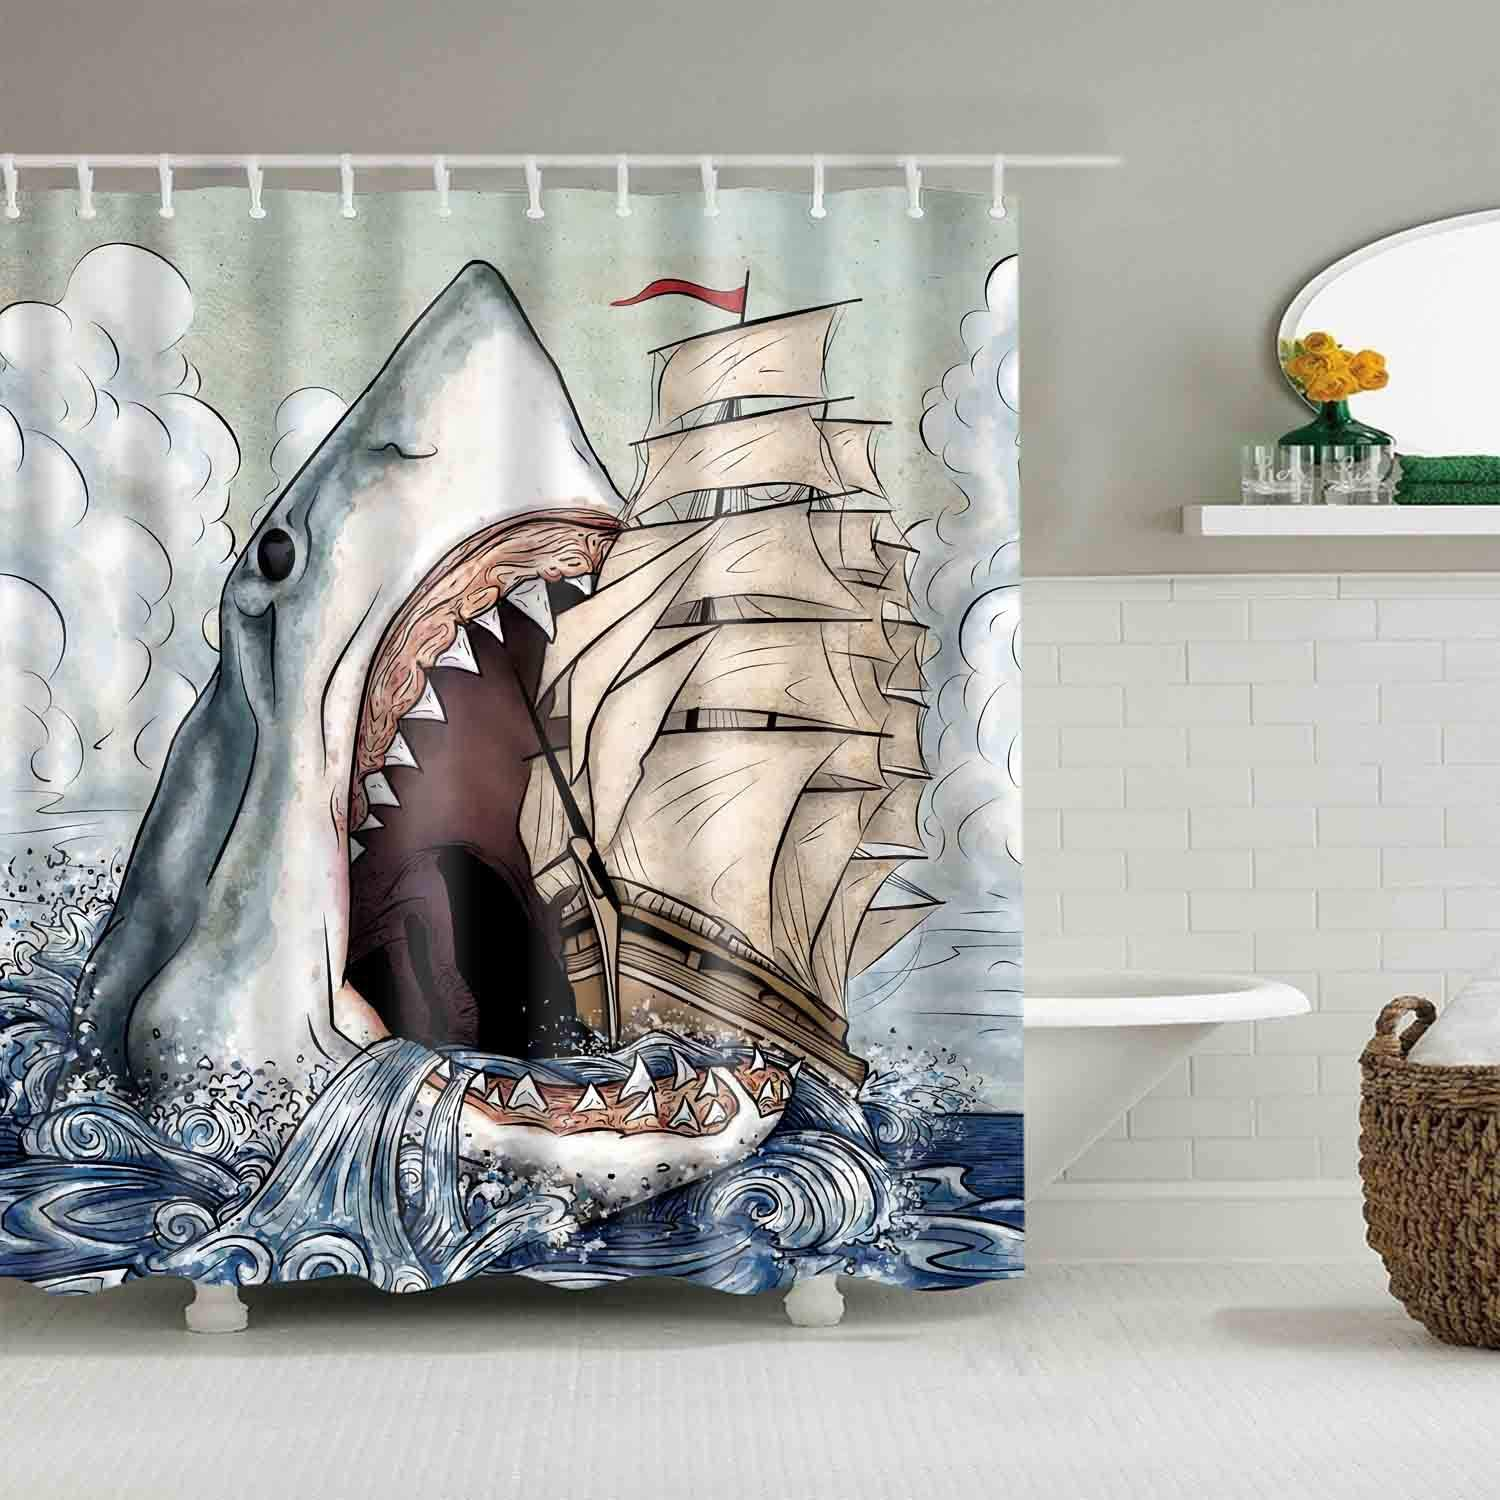 "Big Mouth Shark Shower Curtains Mediterranean Style Marine Life, Bath Fantastic Decorations Waterproof Polyester Fabric Bathroom Shower Curtain Liner with Hooks 72"" x 72"" (Shark)"